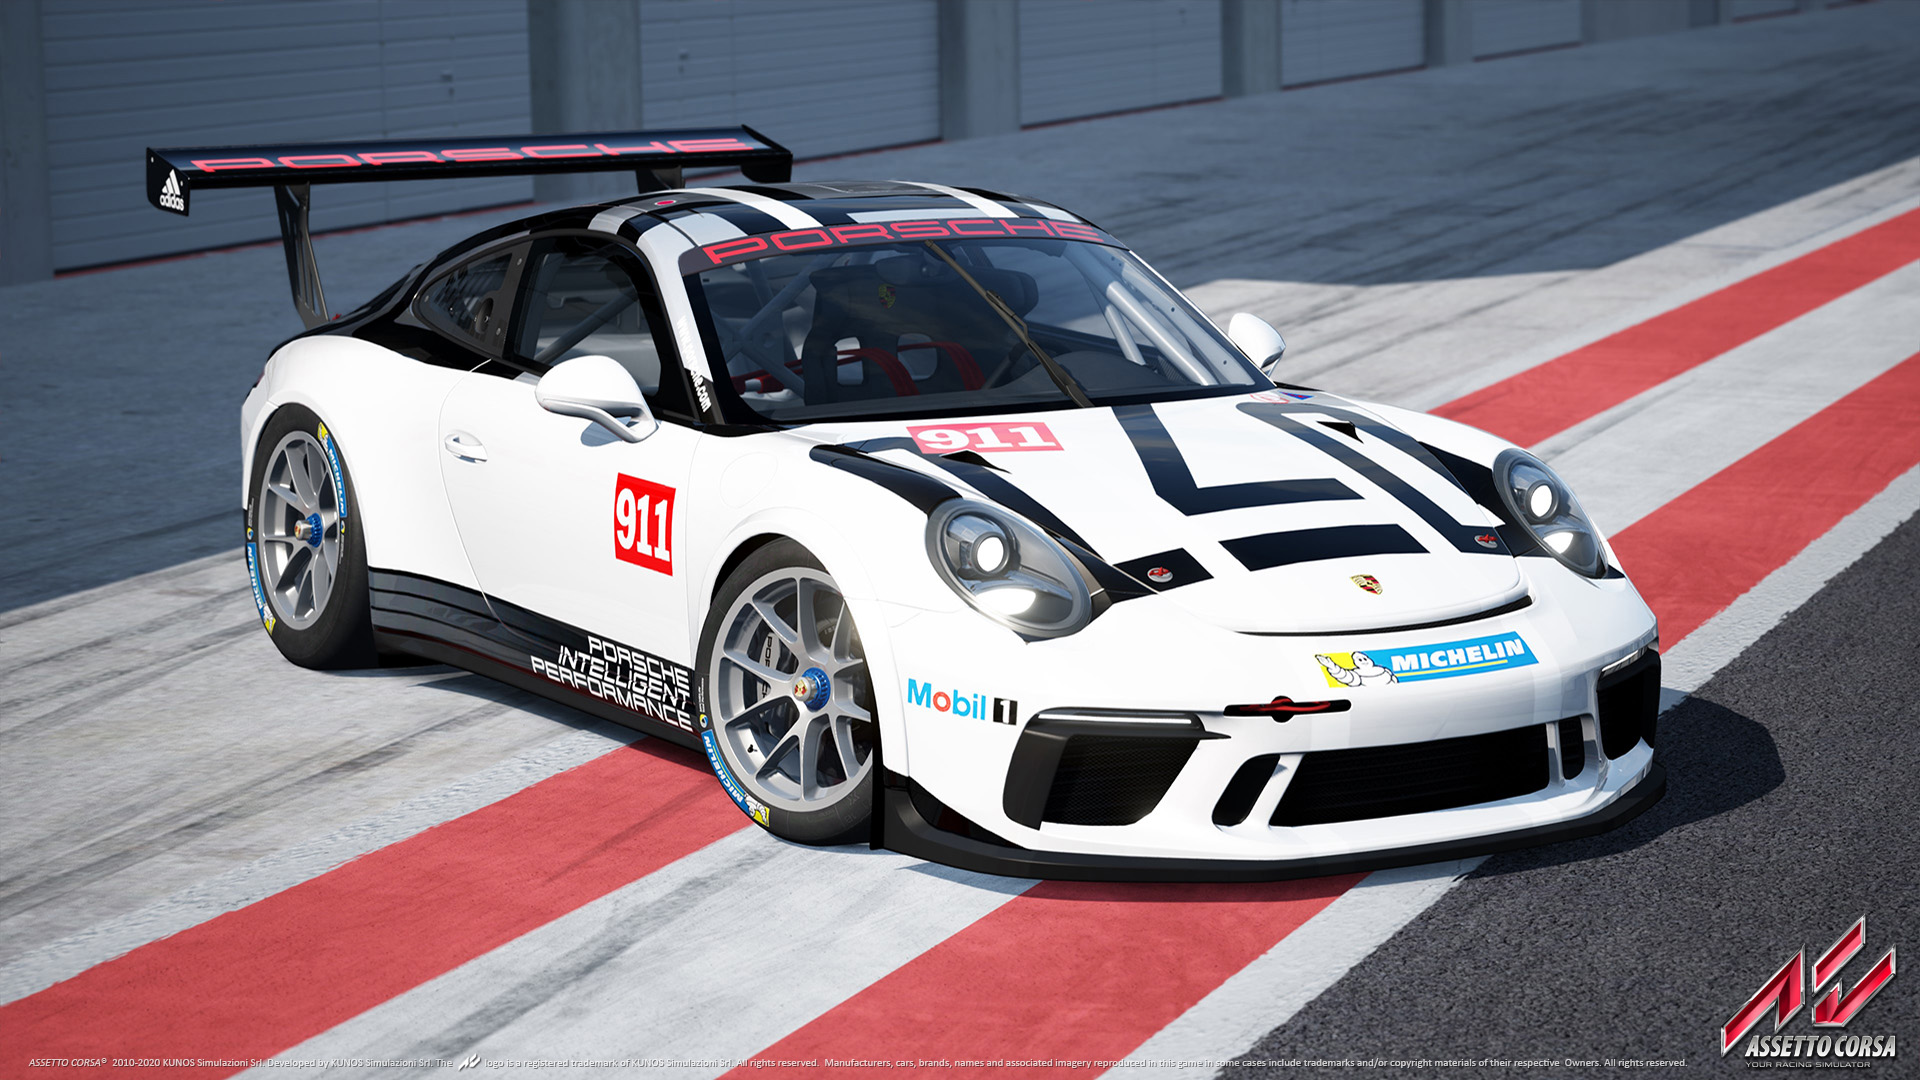 assetto corsa updated for playstation 4 porsche iii dlc released racedepartment. Black Bedroom Furniture Sets. Home Design Ideas